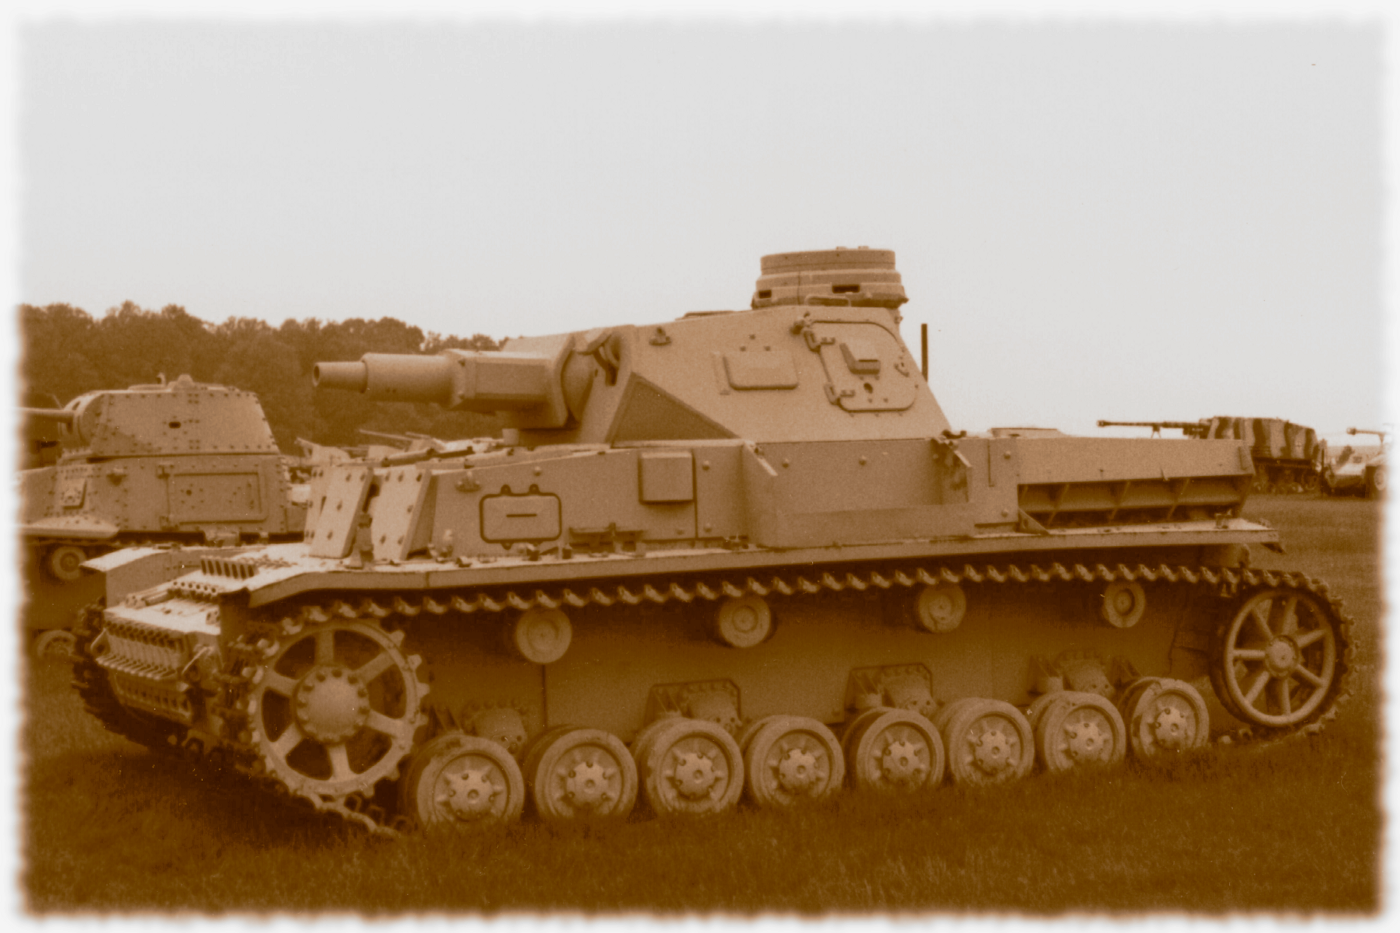 The Panzer IV, a WWII German tank. Based on a photo by the author taken a Aberdeen Proving Grounds, Maryland, USA.